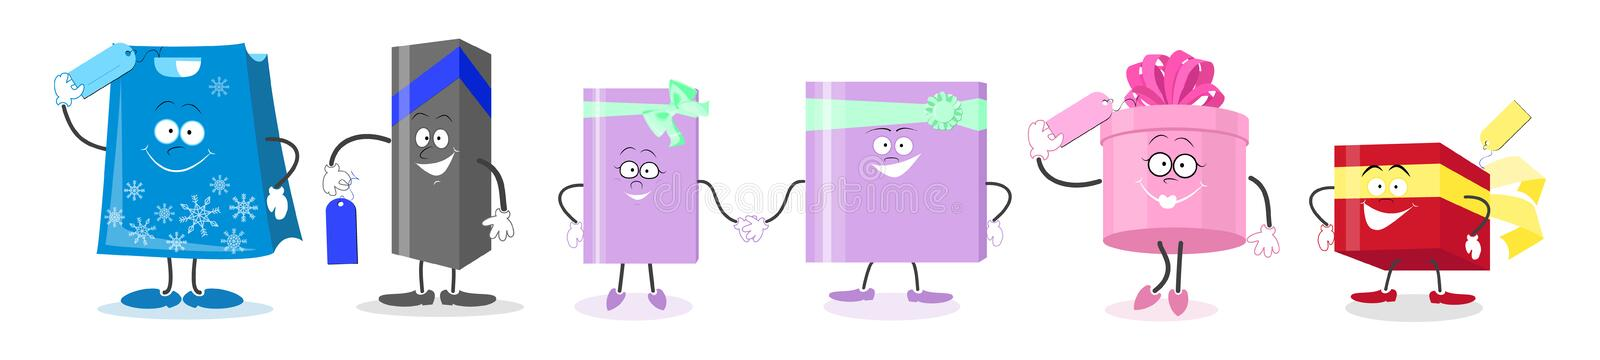 Set gifts. Cartoon animated characters gift boxes . Vector illus vector illustration